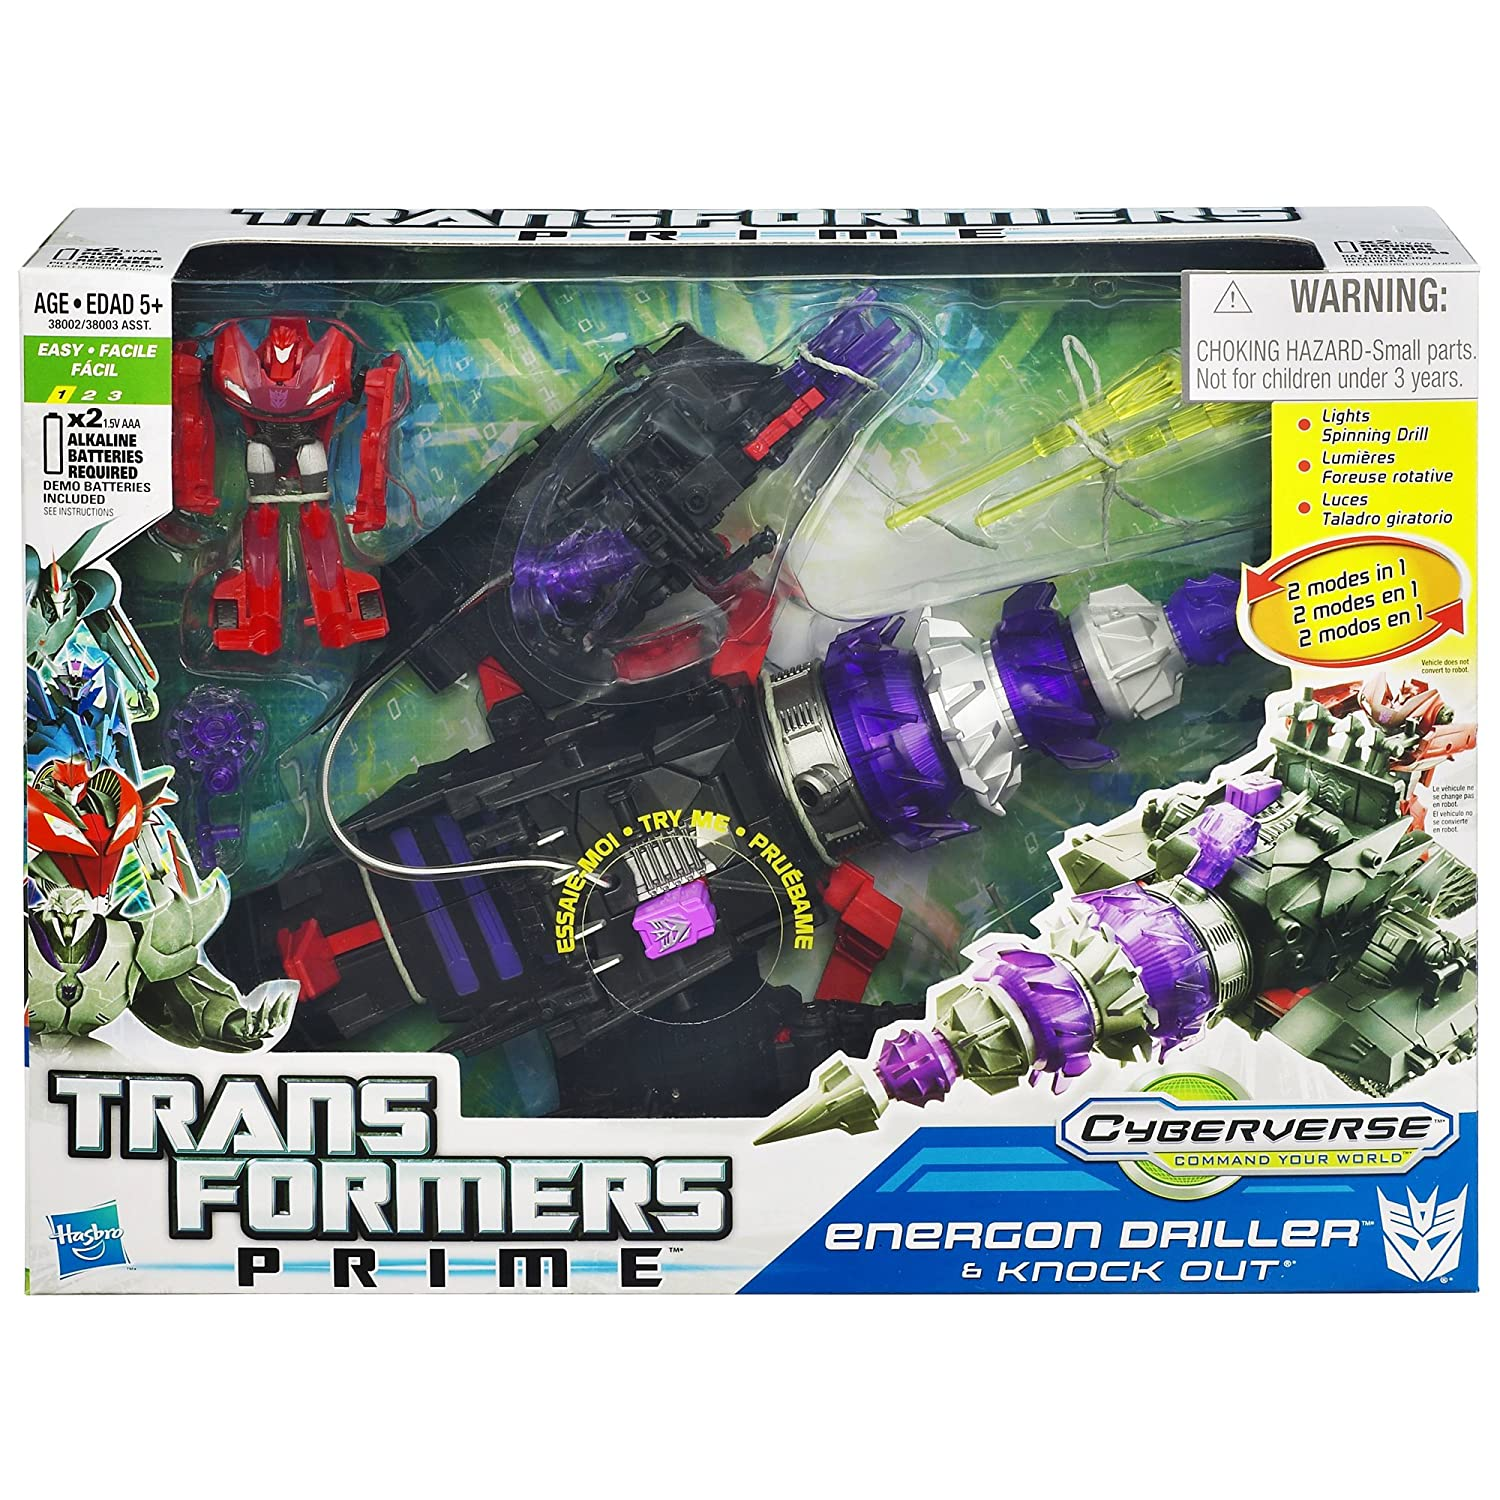 amazon com transformers prime cyberverse command your world